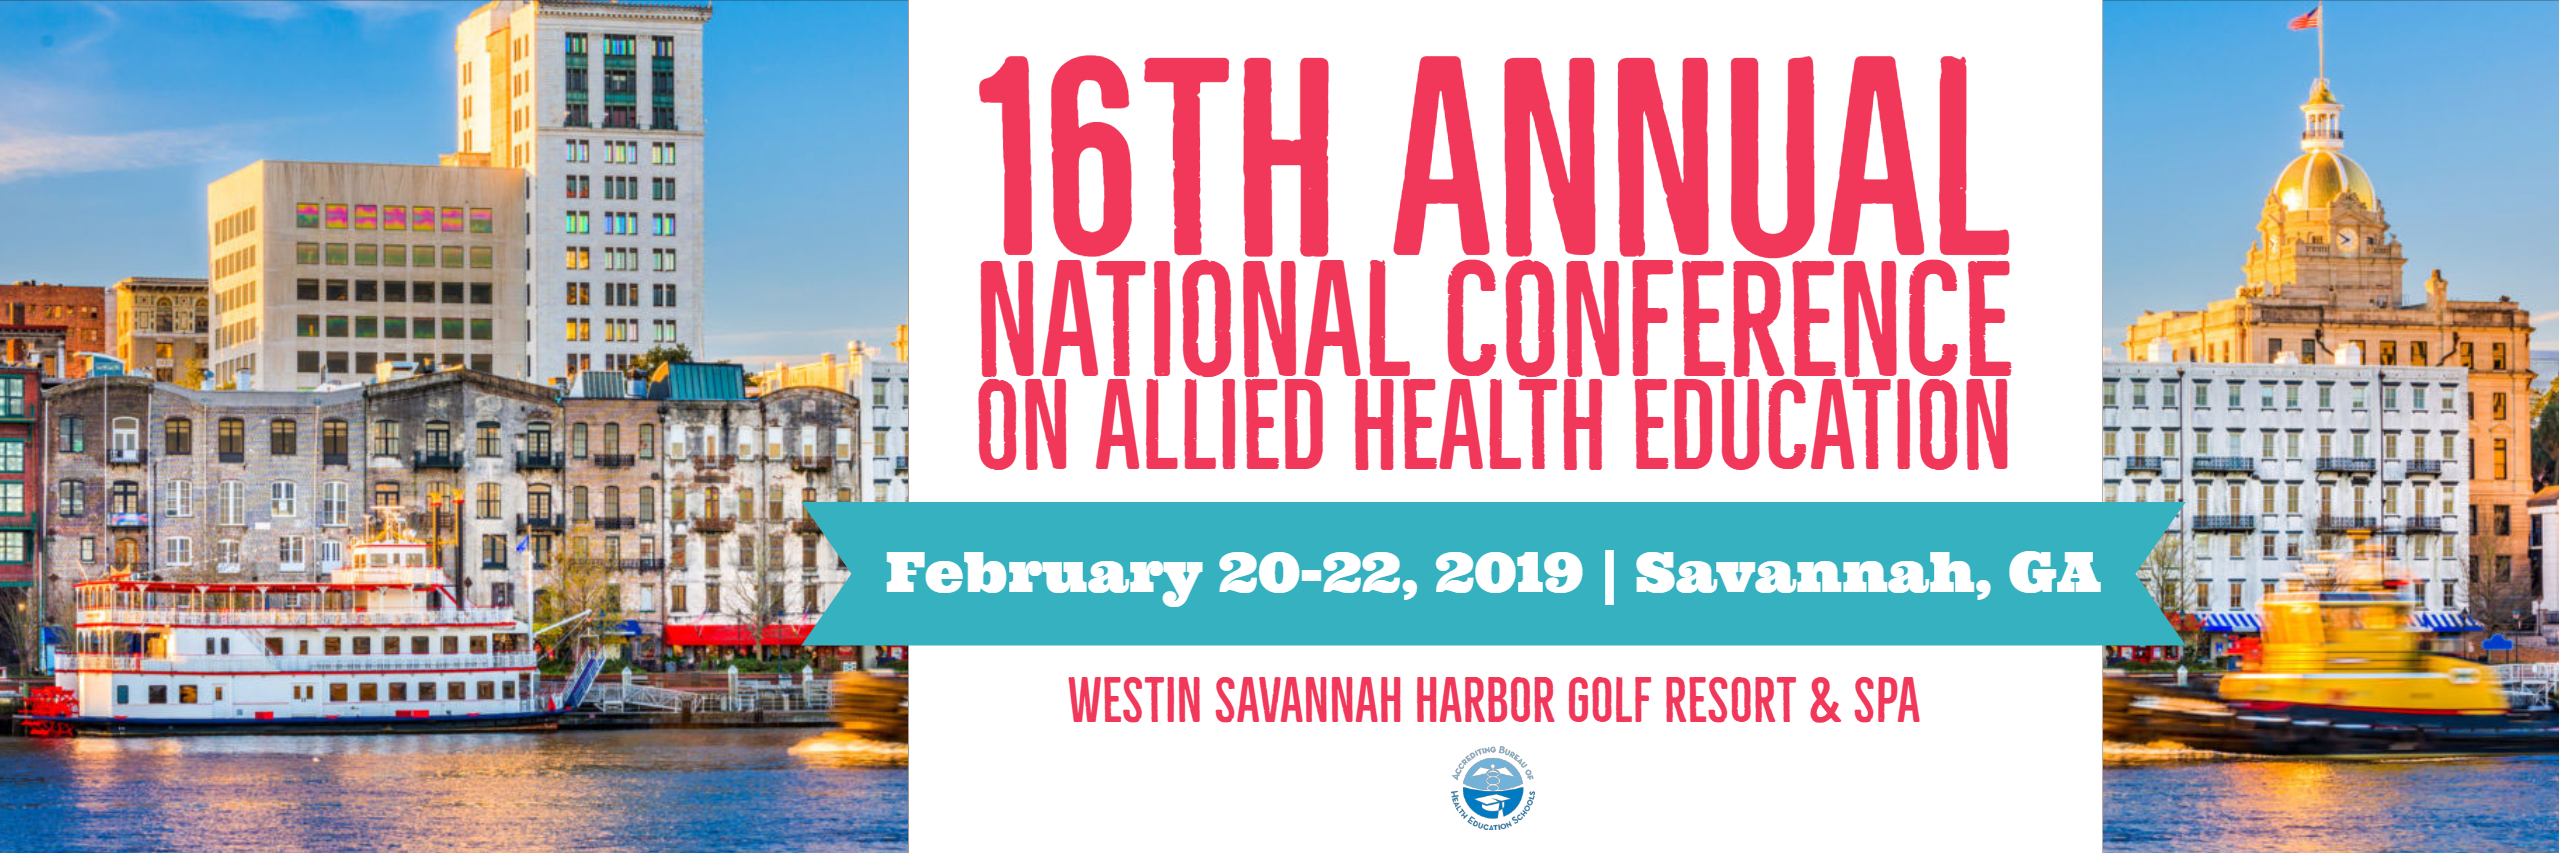 16th Annual National Conference on Allied Health Education and Pre-Conference Workshops